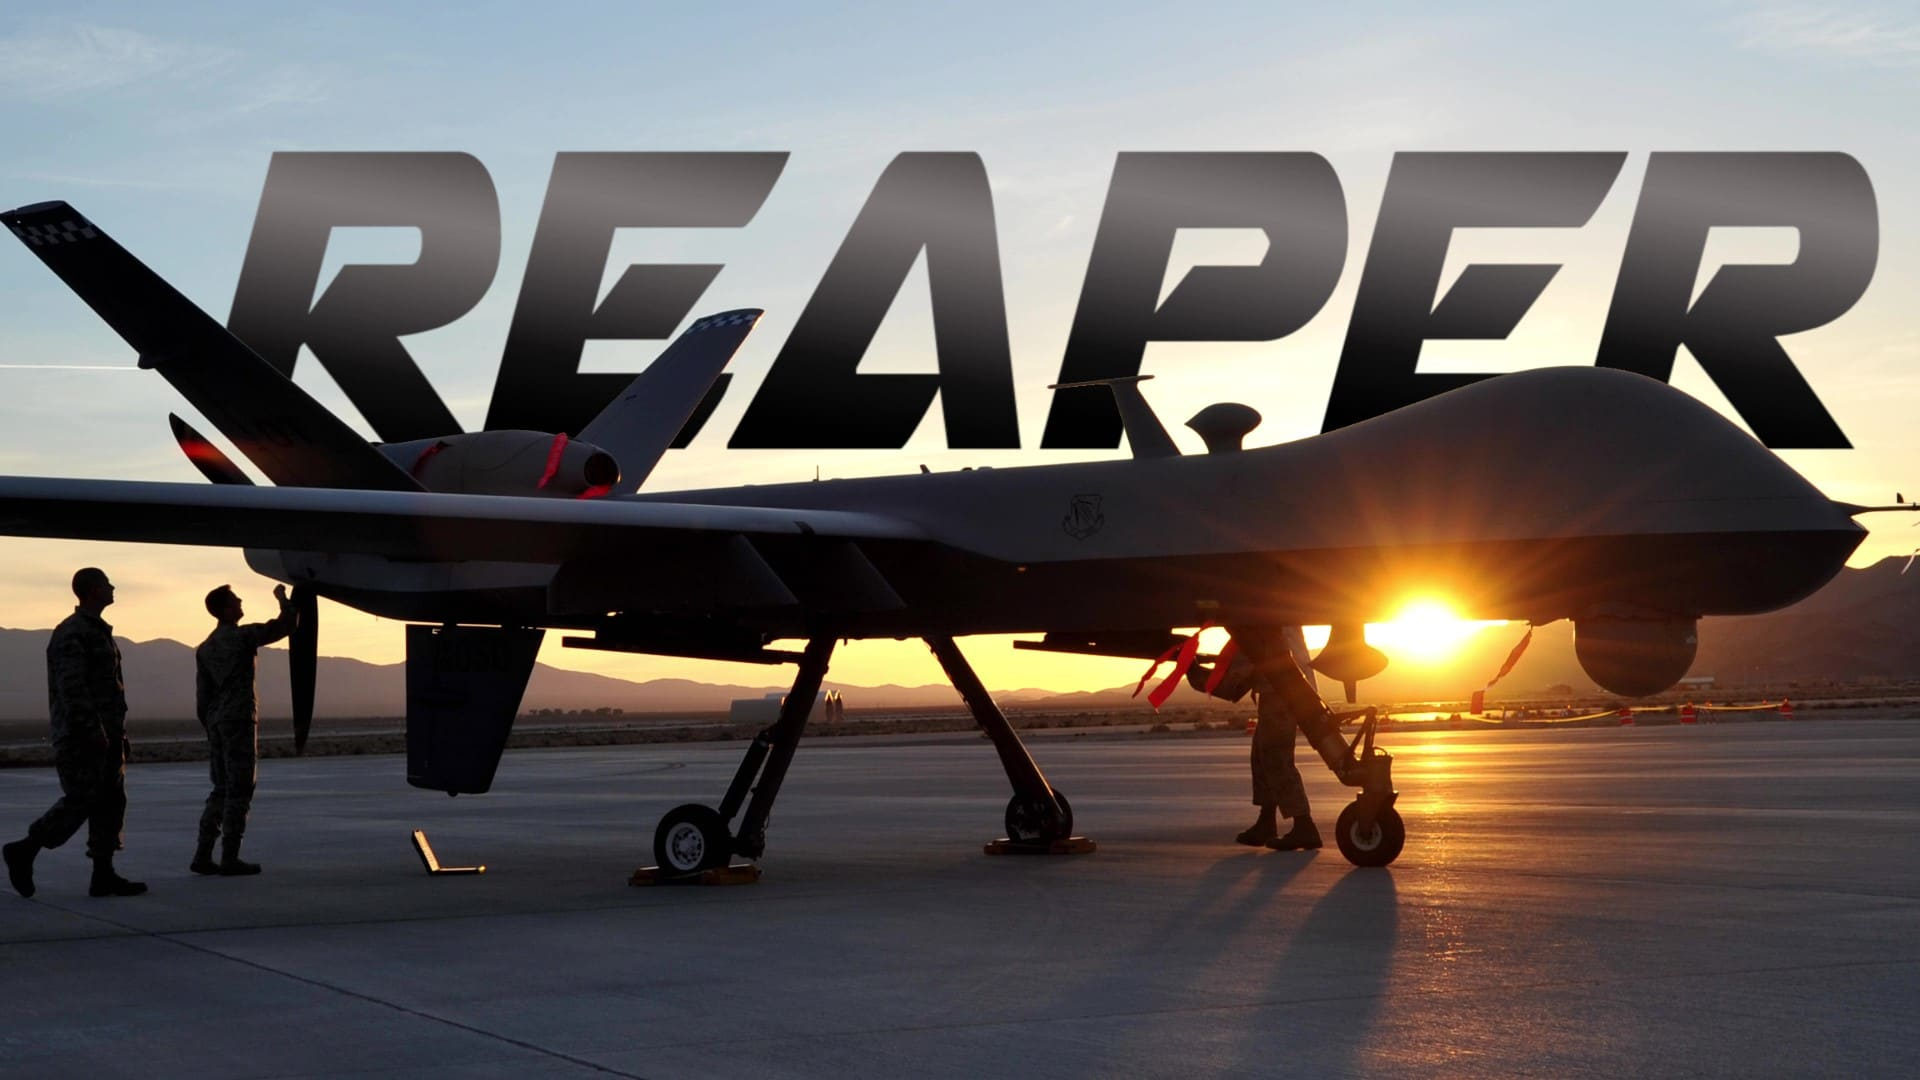 United States Air Force: The MQ-9 Reaper